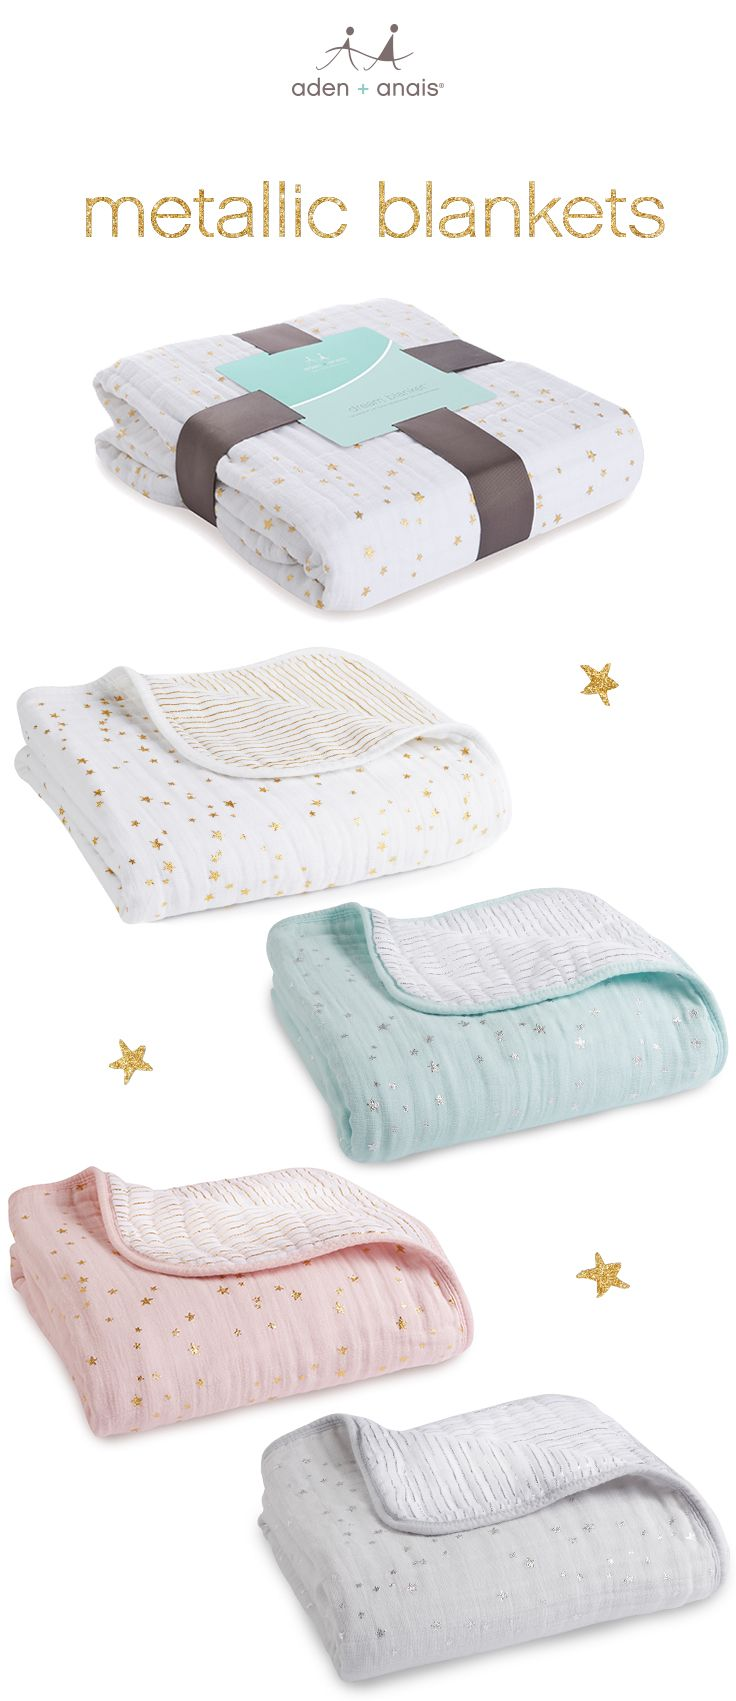 you won't find a dreamier baby gift. four layers of soft cotton muslin make this blanket soft and snuggly, wash after wash. the aden + anais dream blanket gets a glam new upgrade with modern, metallic ink prints on our classic soft, cotton muslin in gold, skylight, primrose and charm. it's a luxe new collection you'll love.